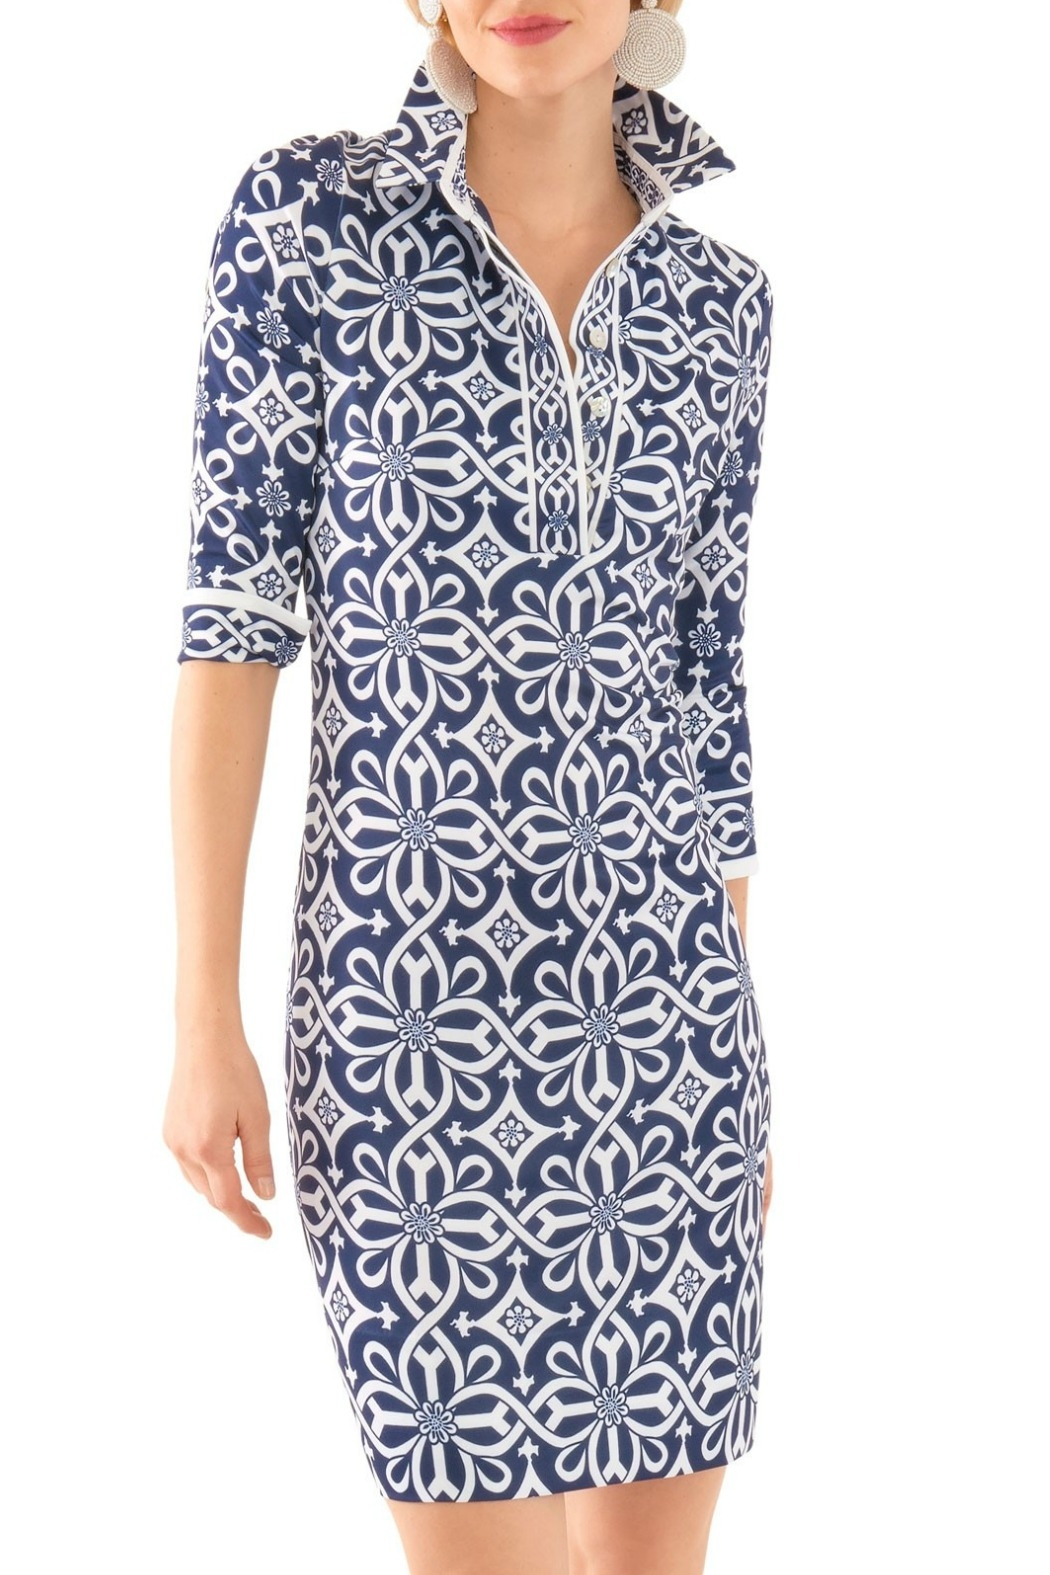 Gretchen Scott Everywhere Piazza Dress - Front Cropped Image